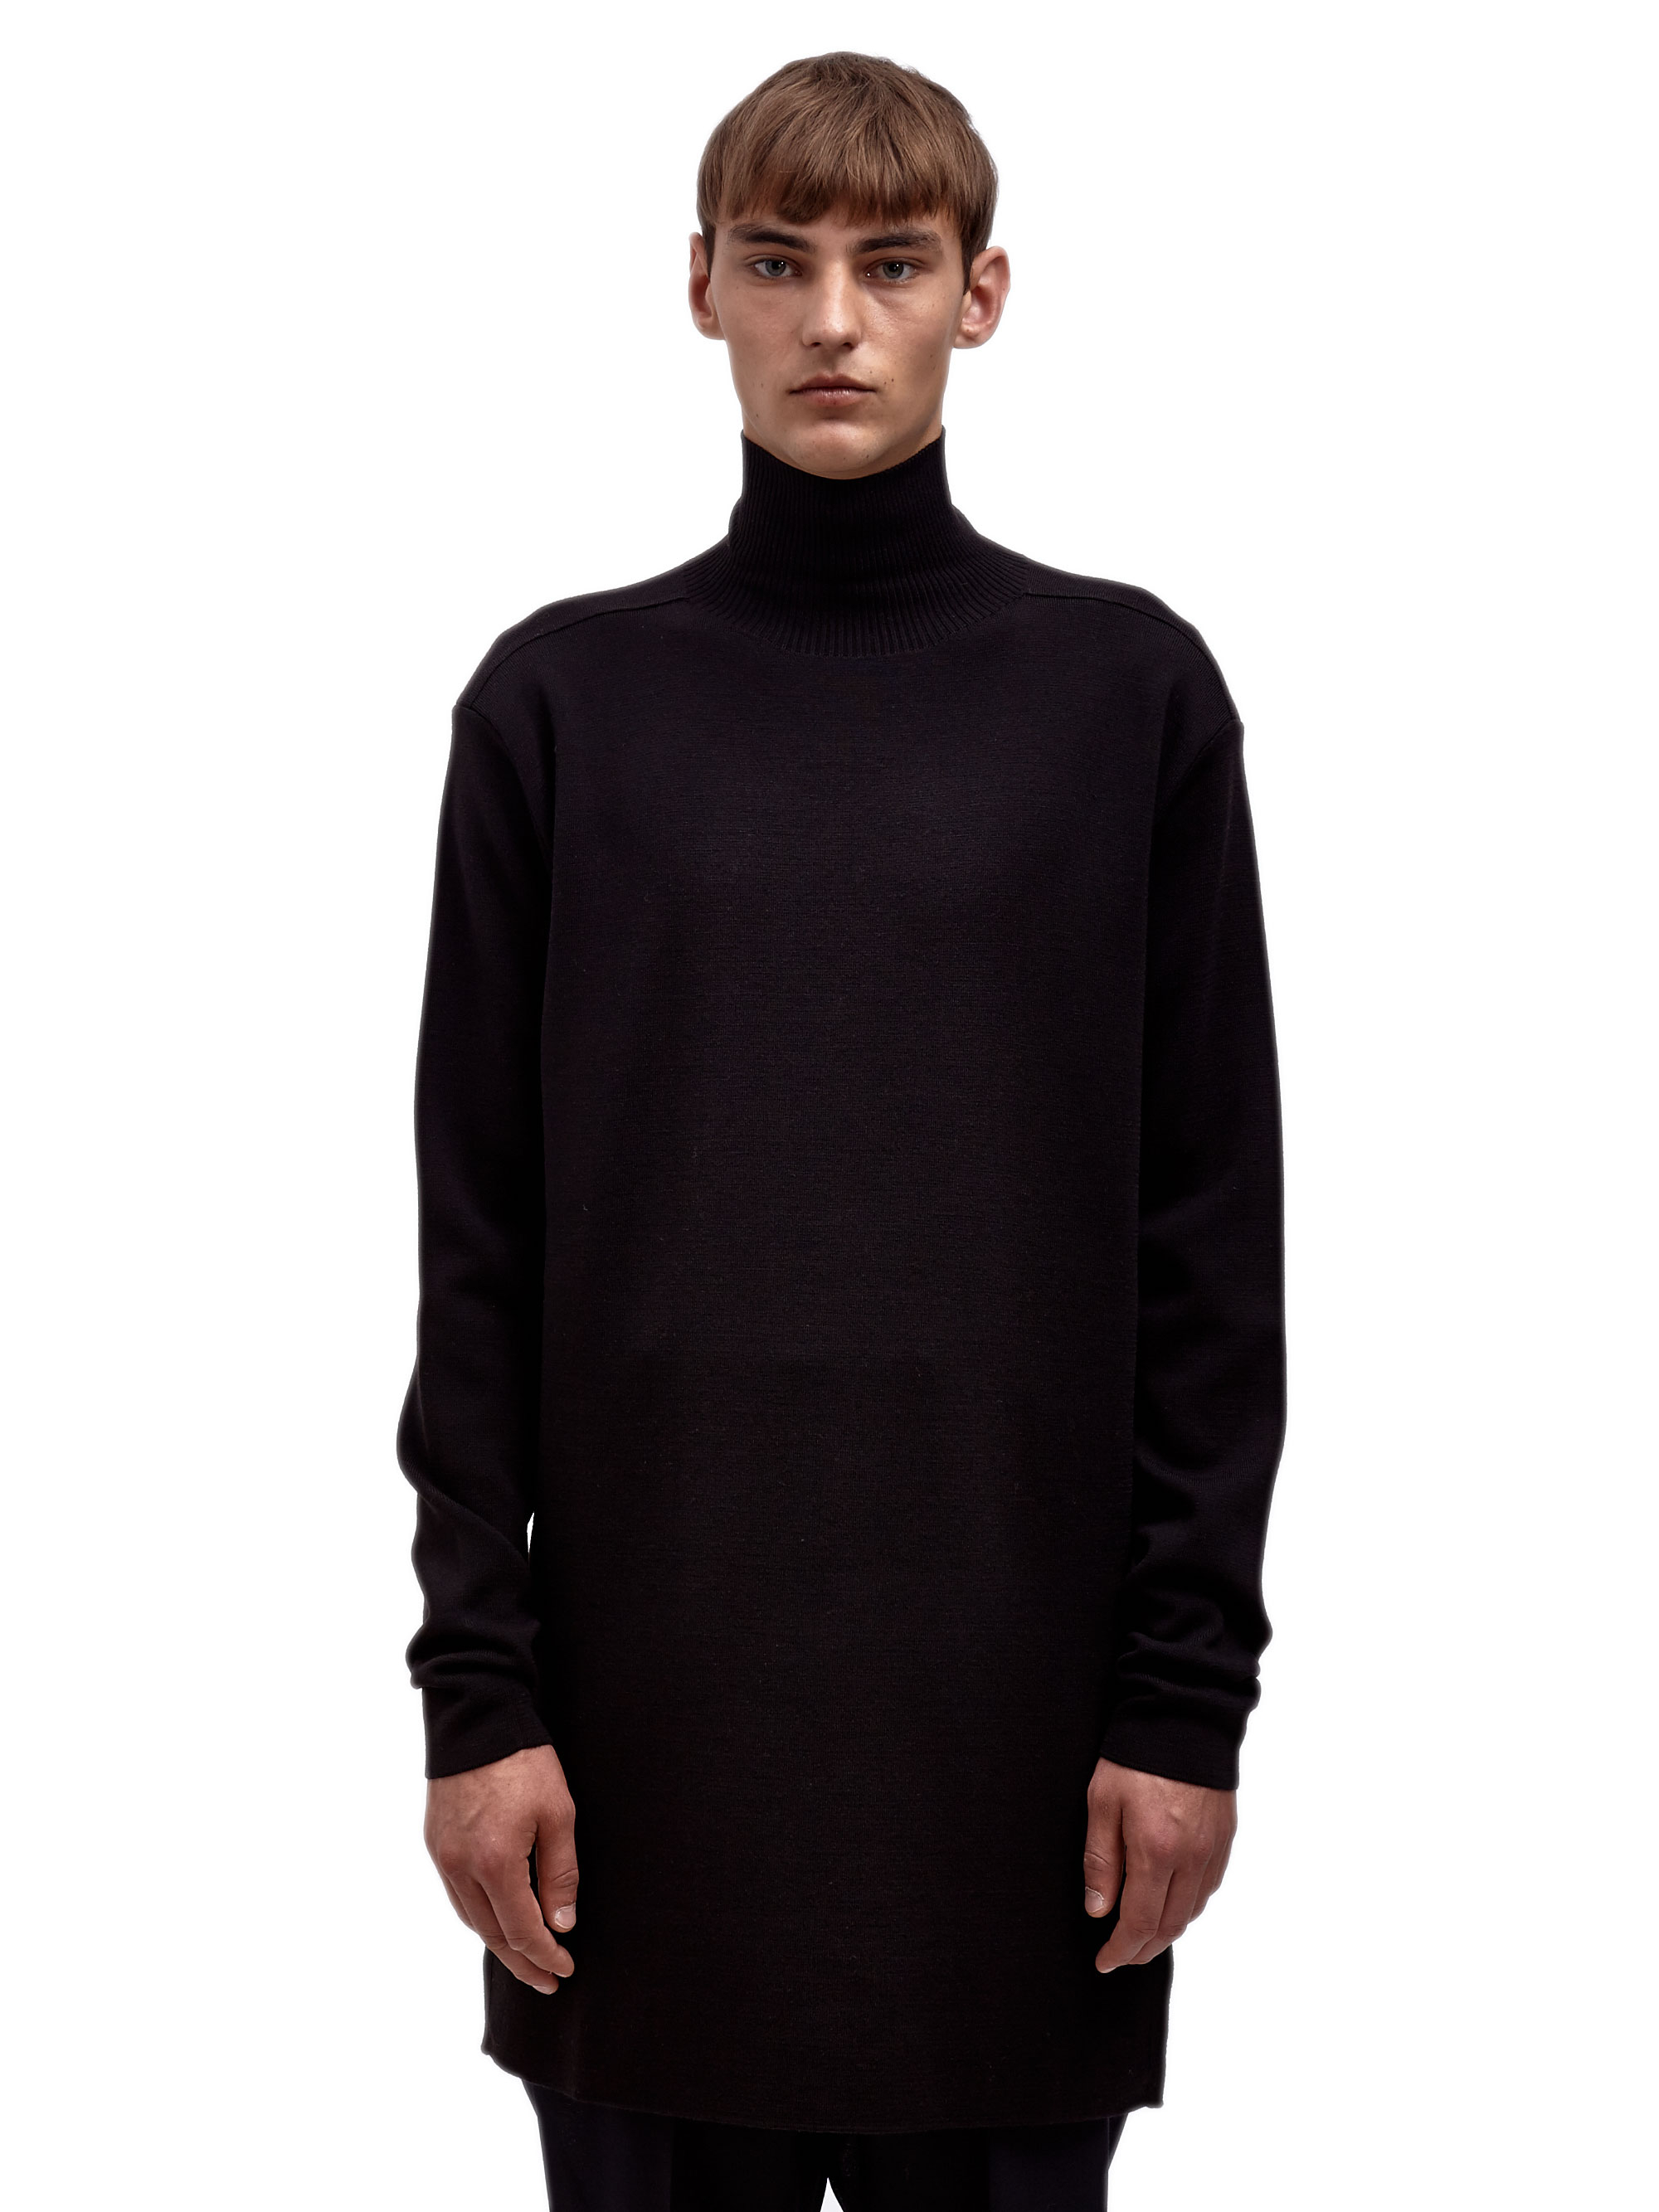 Turtleneck Fashion Mens